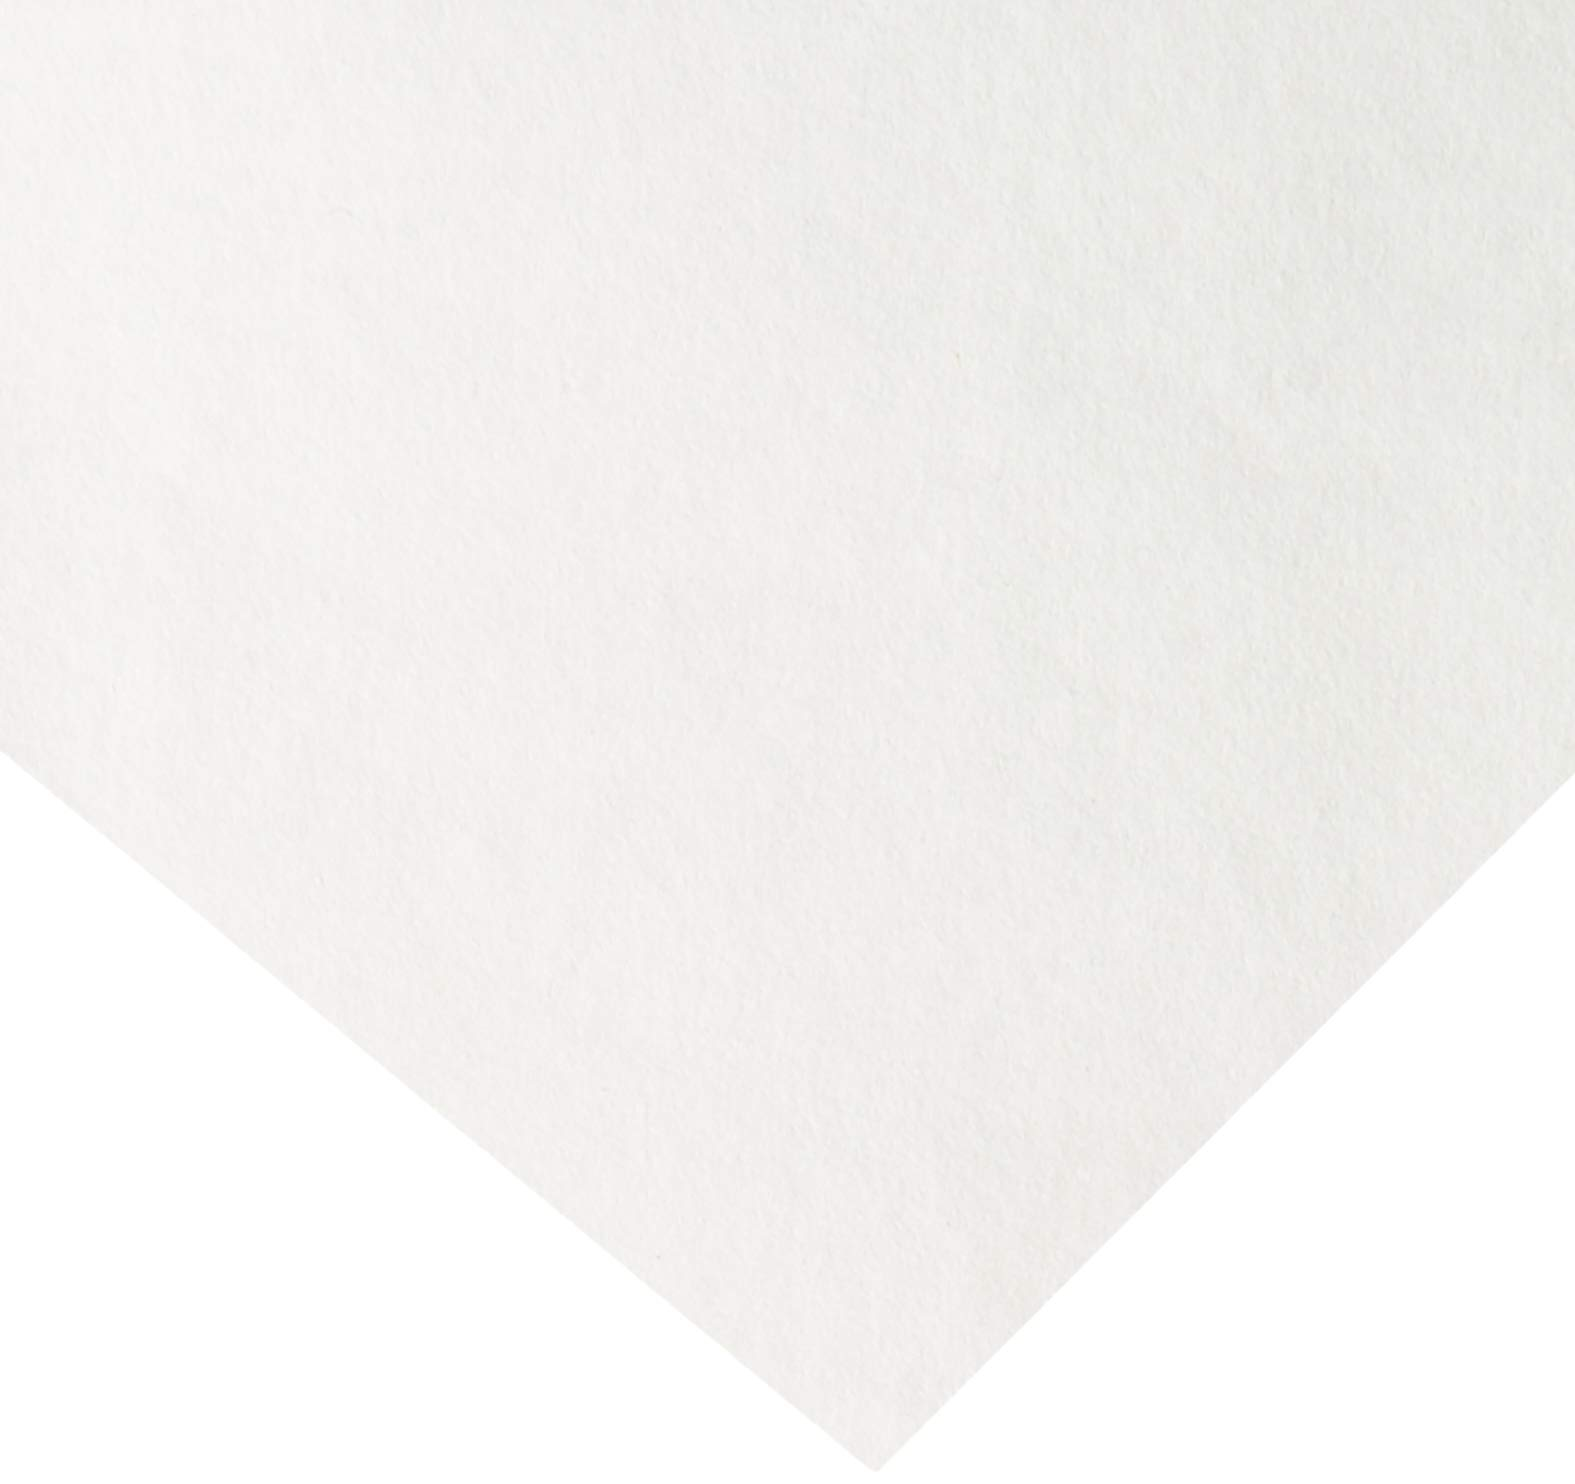 Thermoweb Heat'n Bond Lite Soft Stretch Iron-On Adhesive by Therm O Web